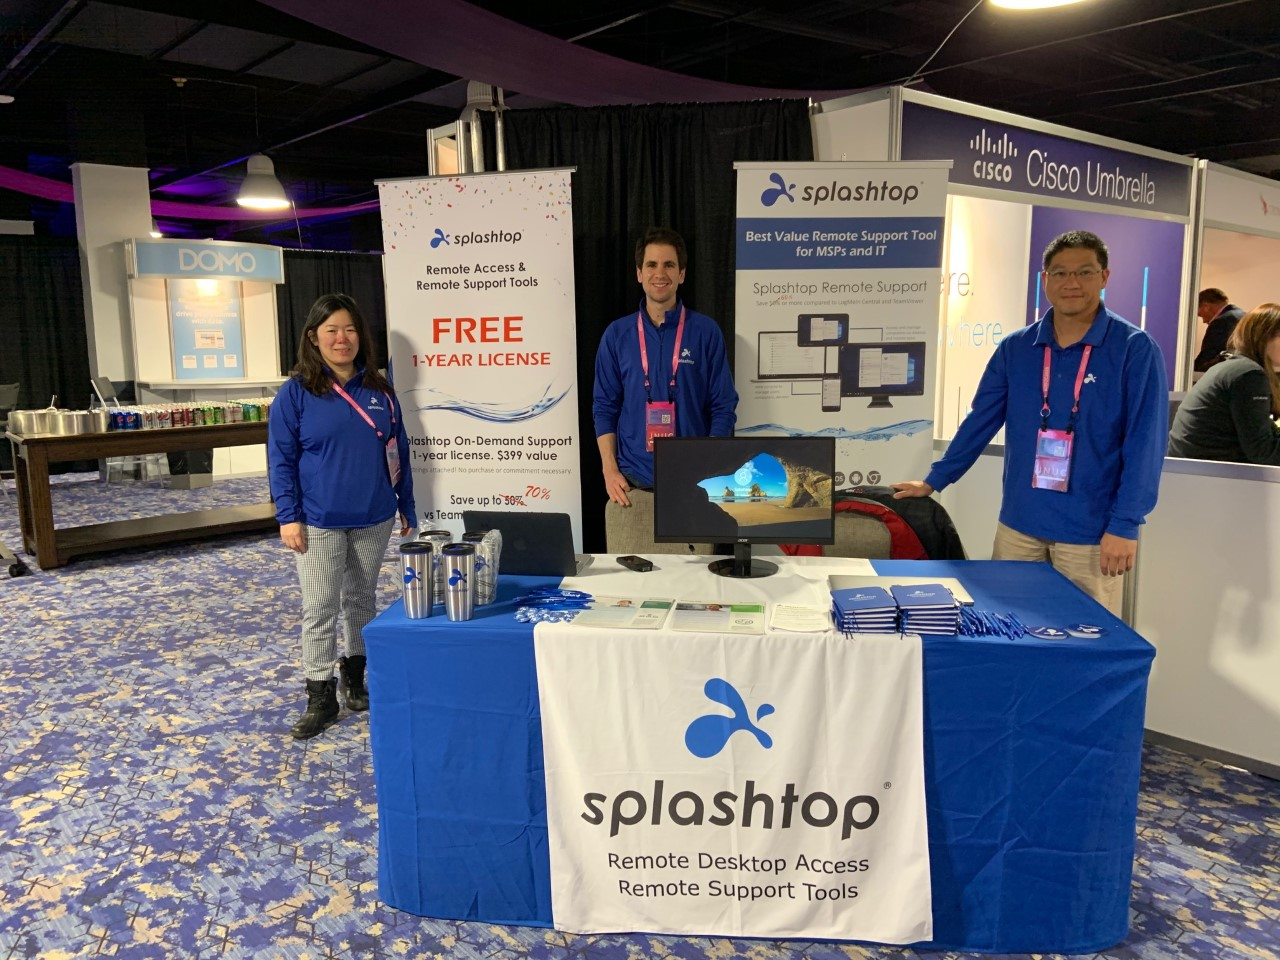 Splashtop at JNUC 2019